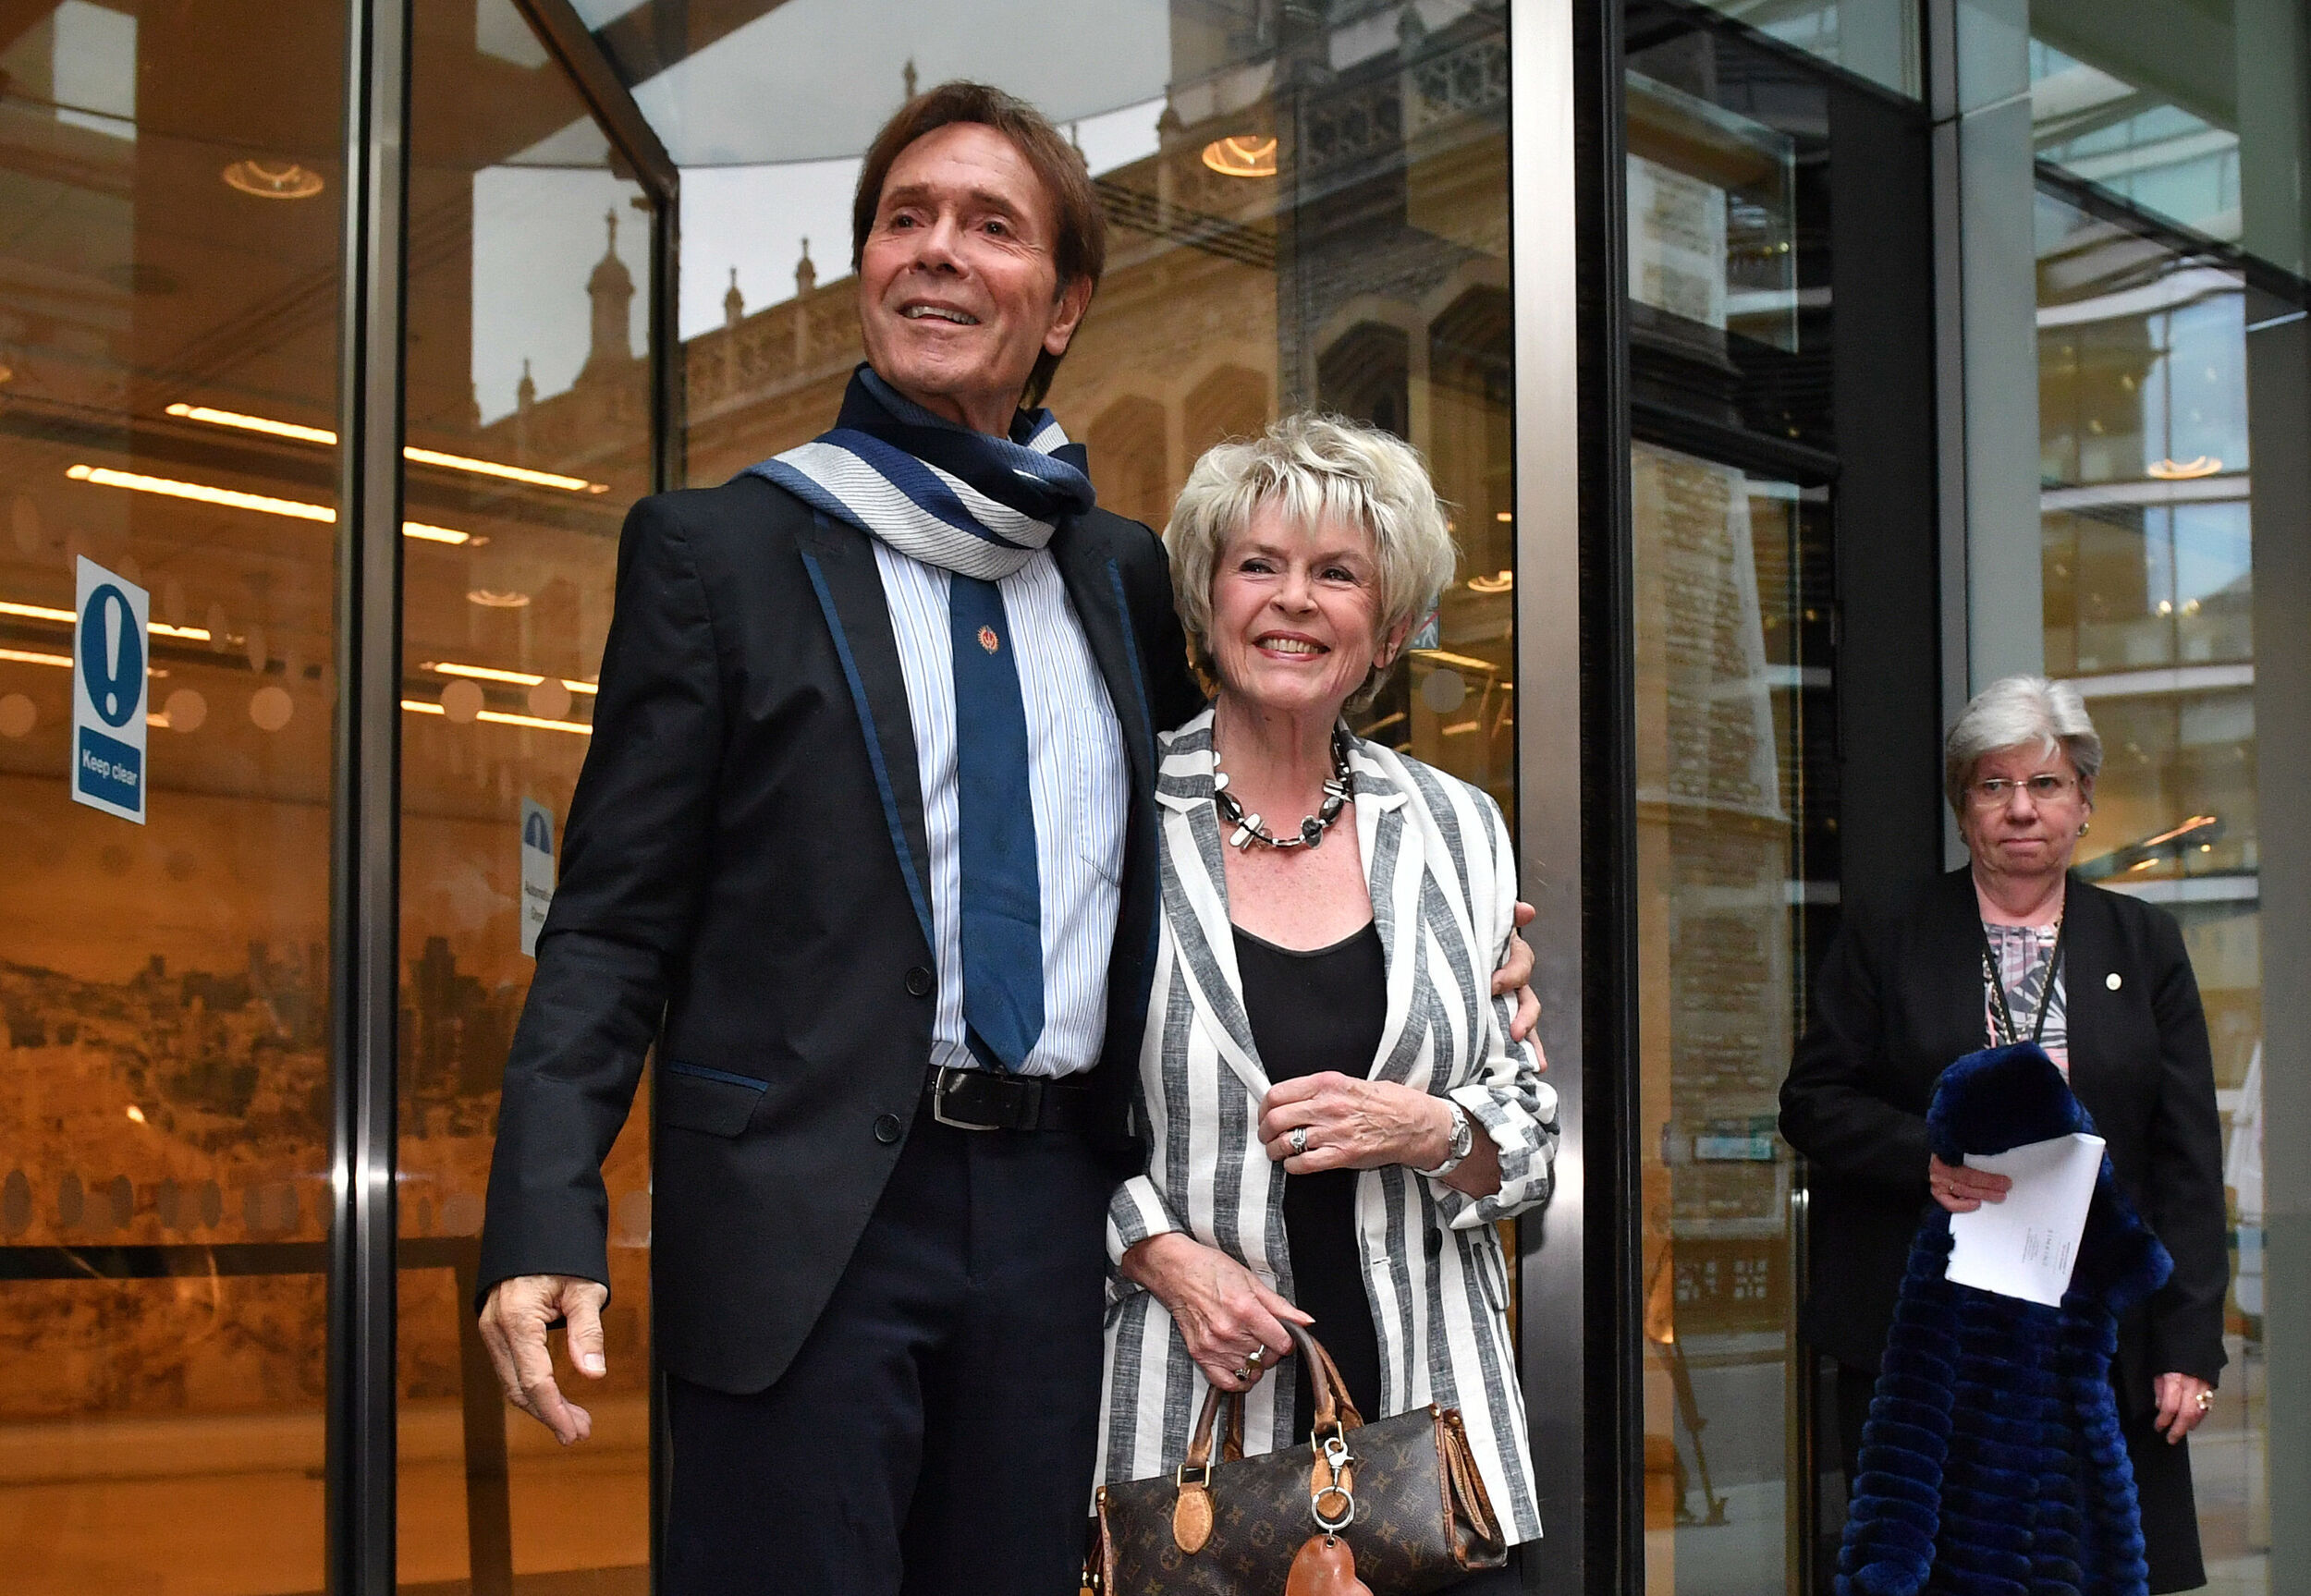 Disillusioned' Cliff Richard has moved to US for good, says Gloria